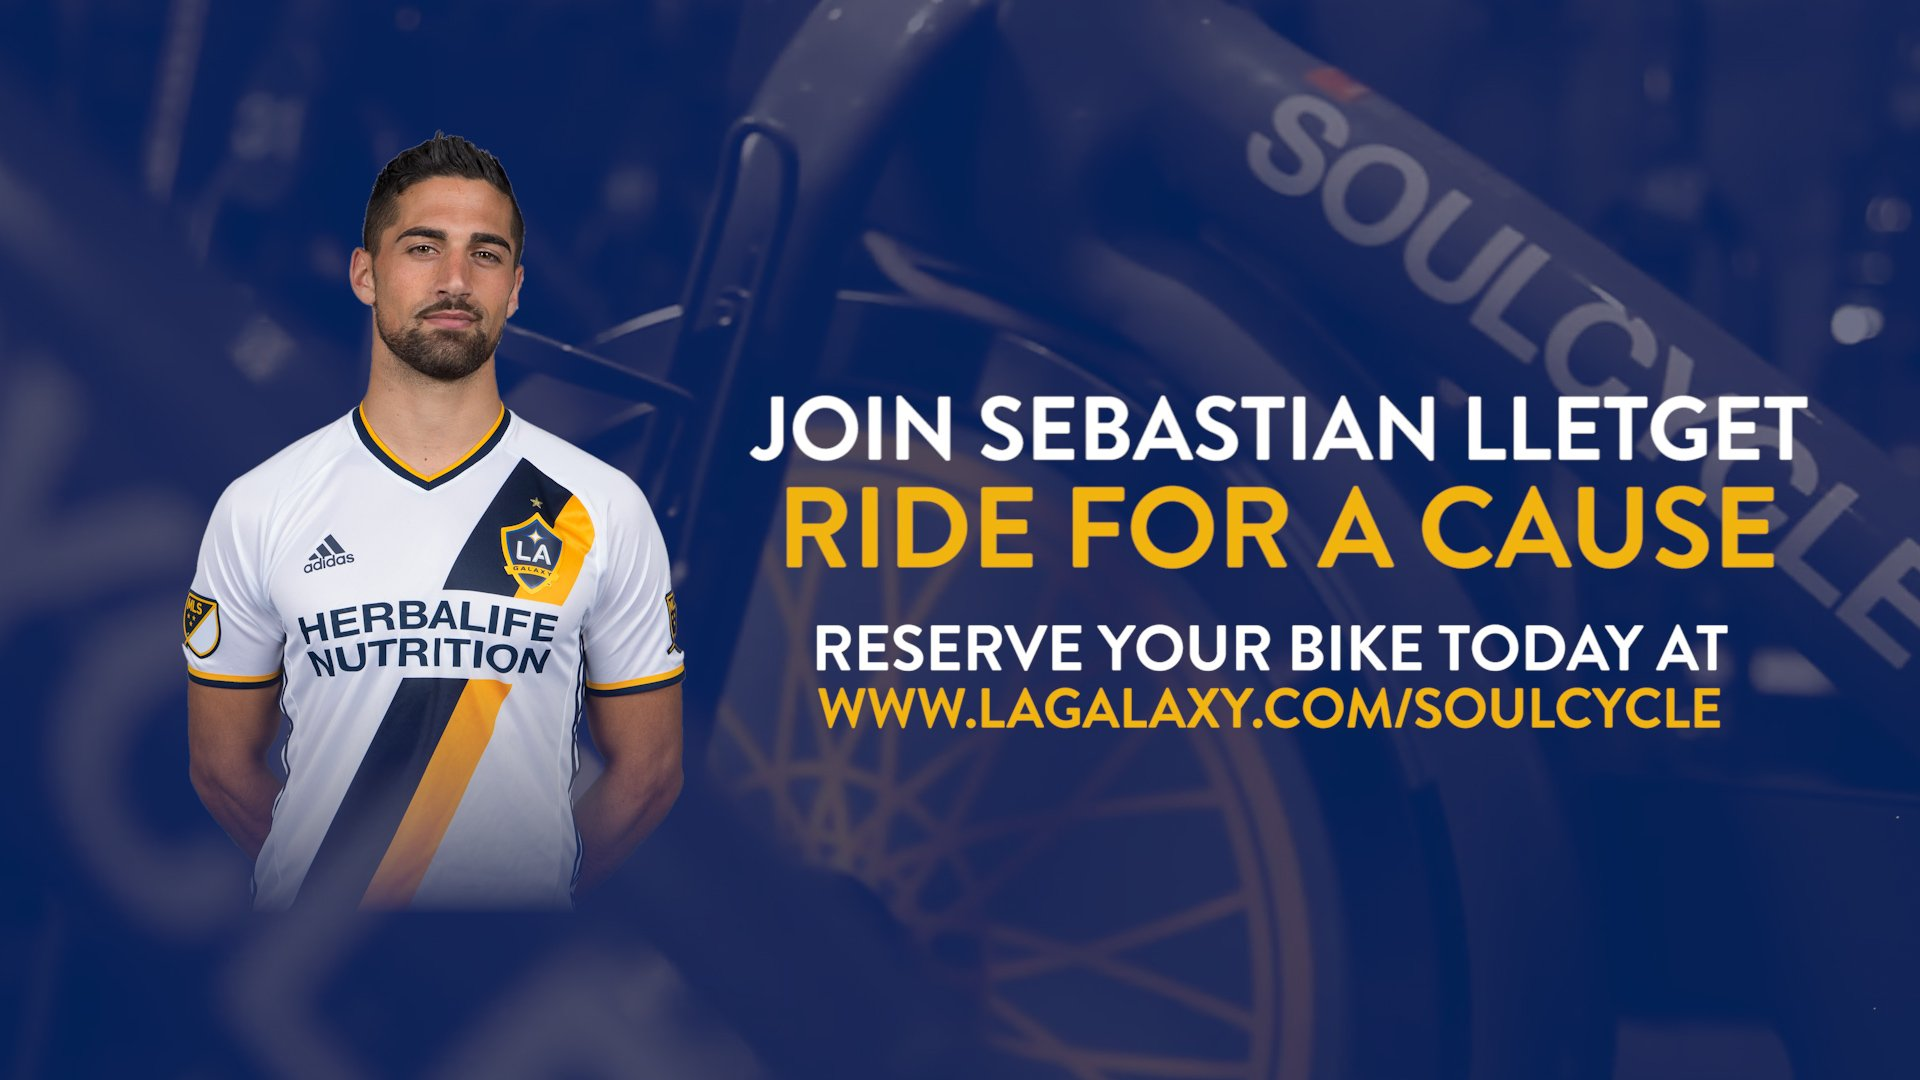 🚴♀️ Ride for a cause with @SLletget and the #LAGalaxy Foundation on Friday: https://t.co/TOWBTh20XD https://t.co/uKlDj3M7o1